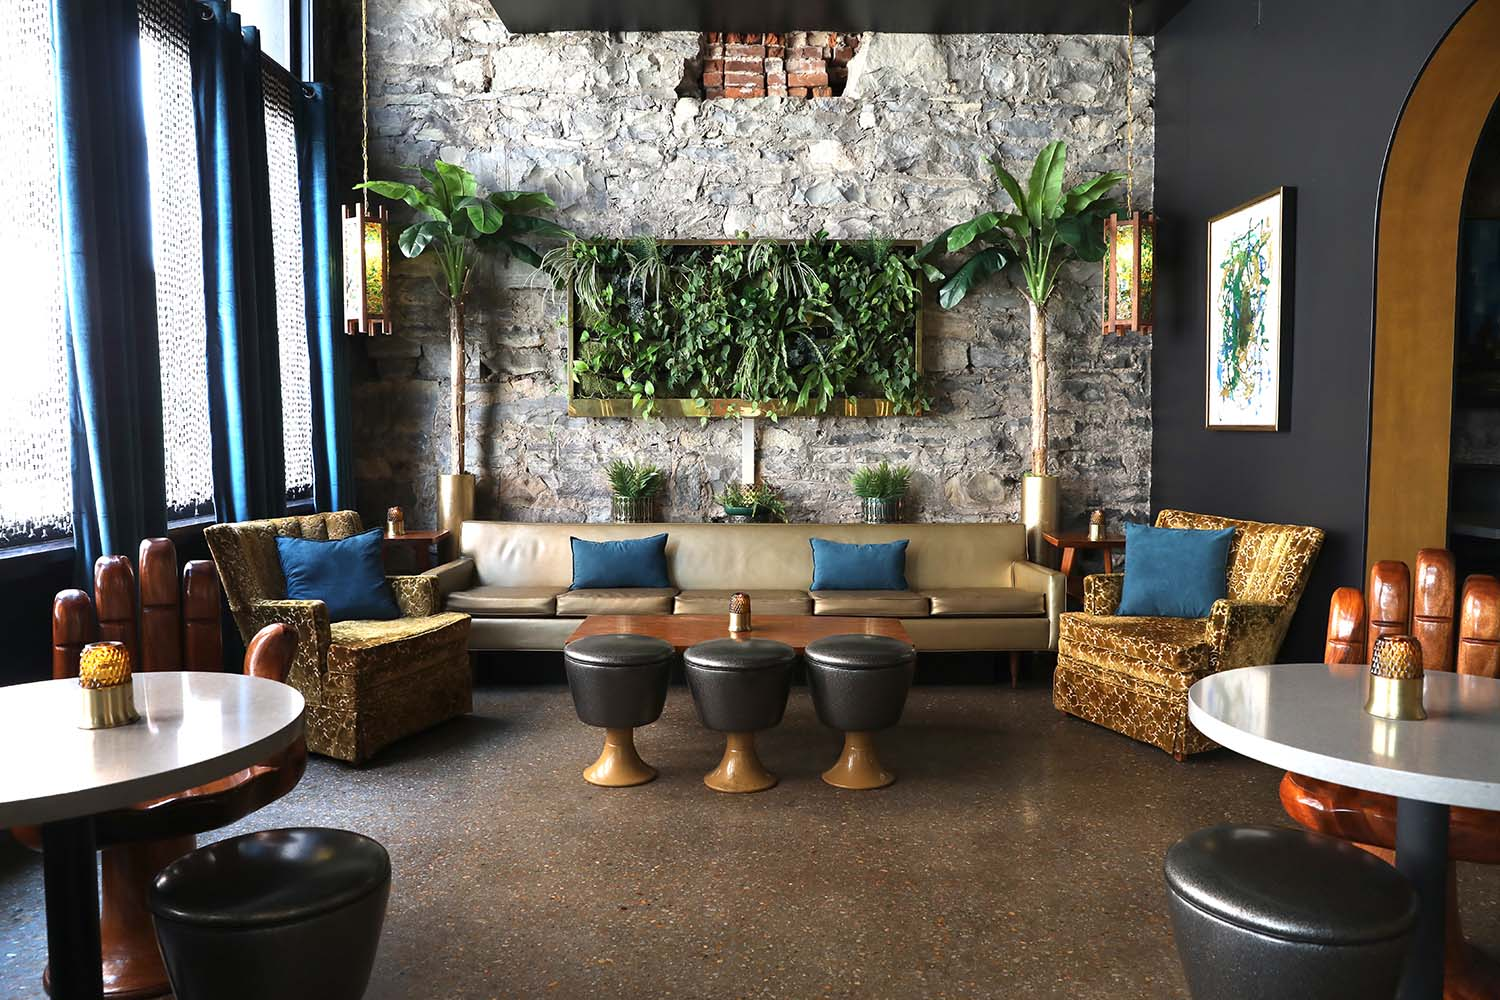 The Dwell Hotel Chattanooga, Tennessee Design Hotel